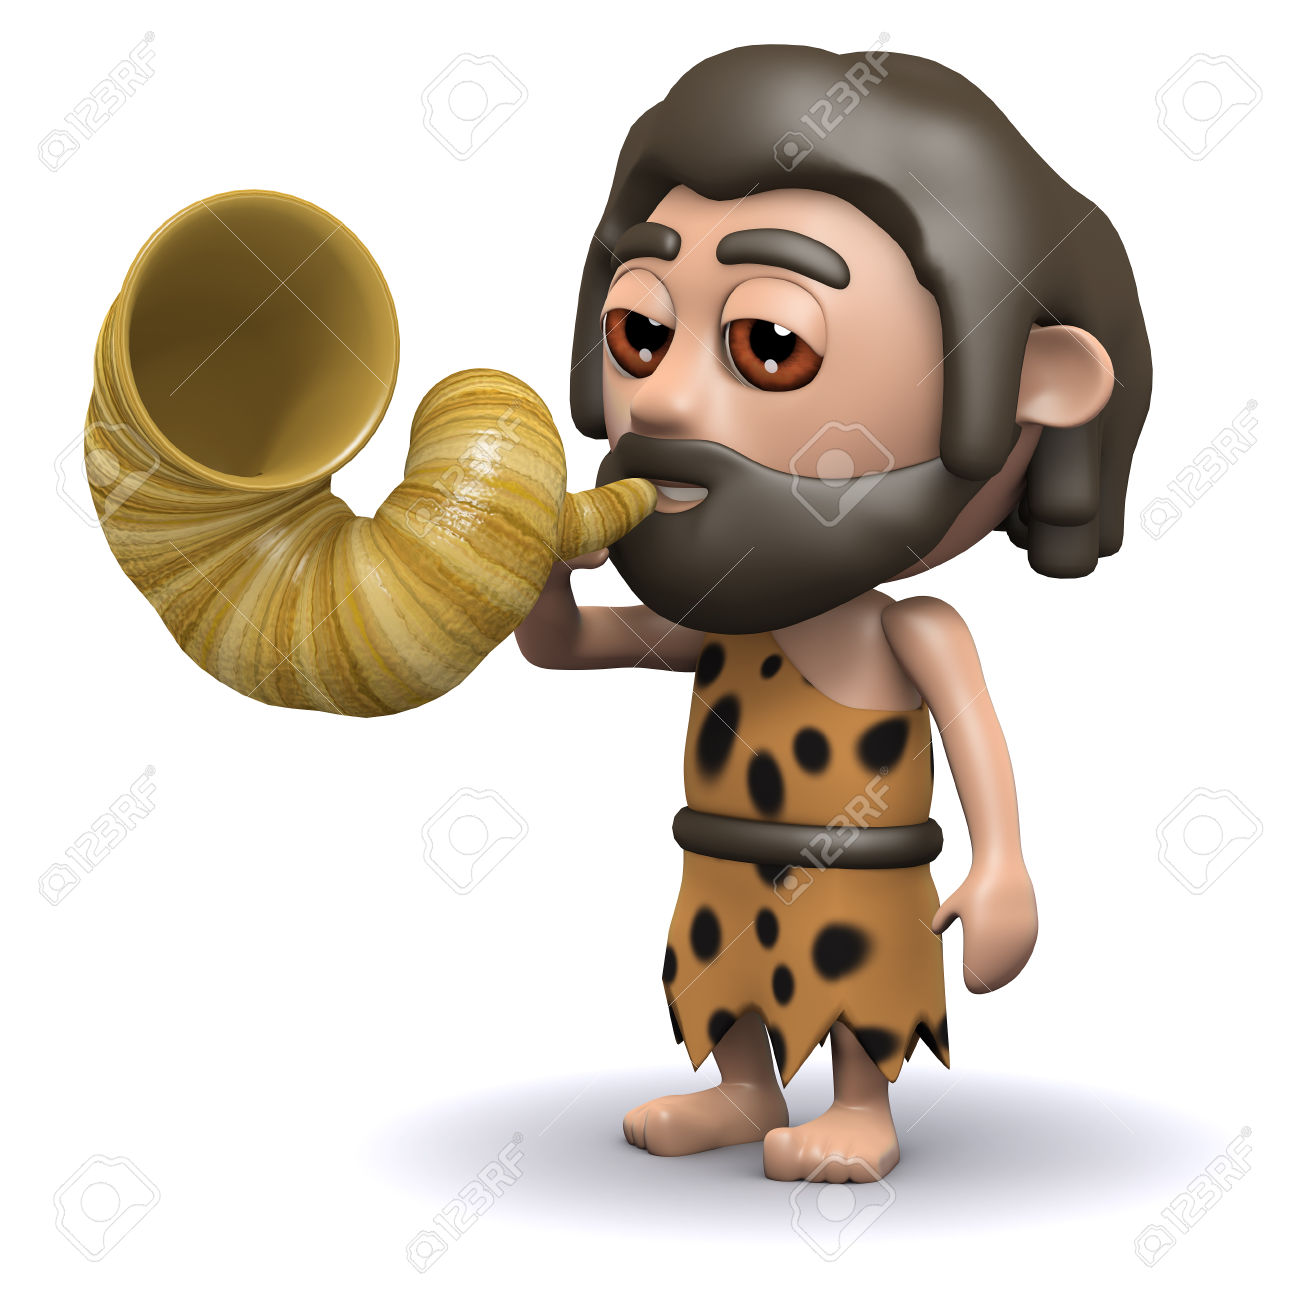 3d Render Of A Caveman Blowing On A Horn Stock Photo, Picture And.